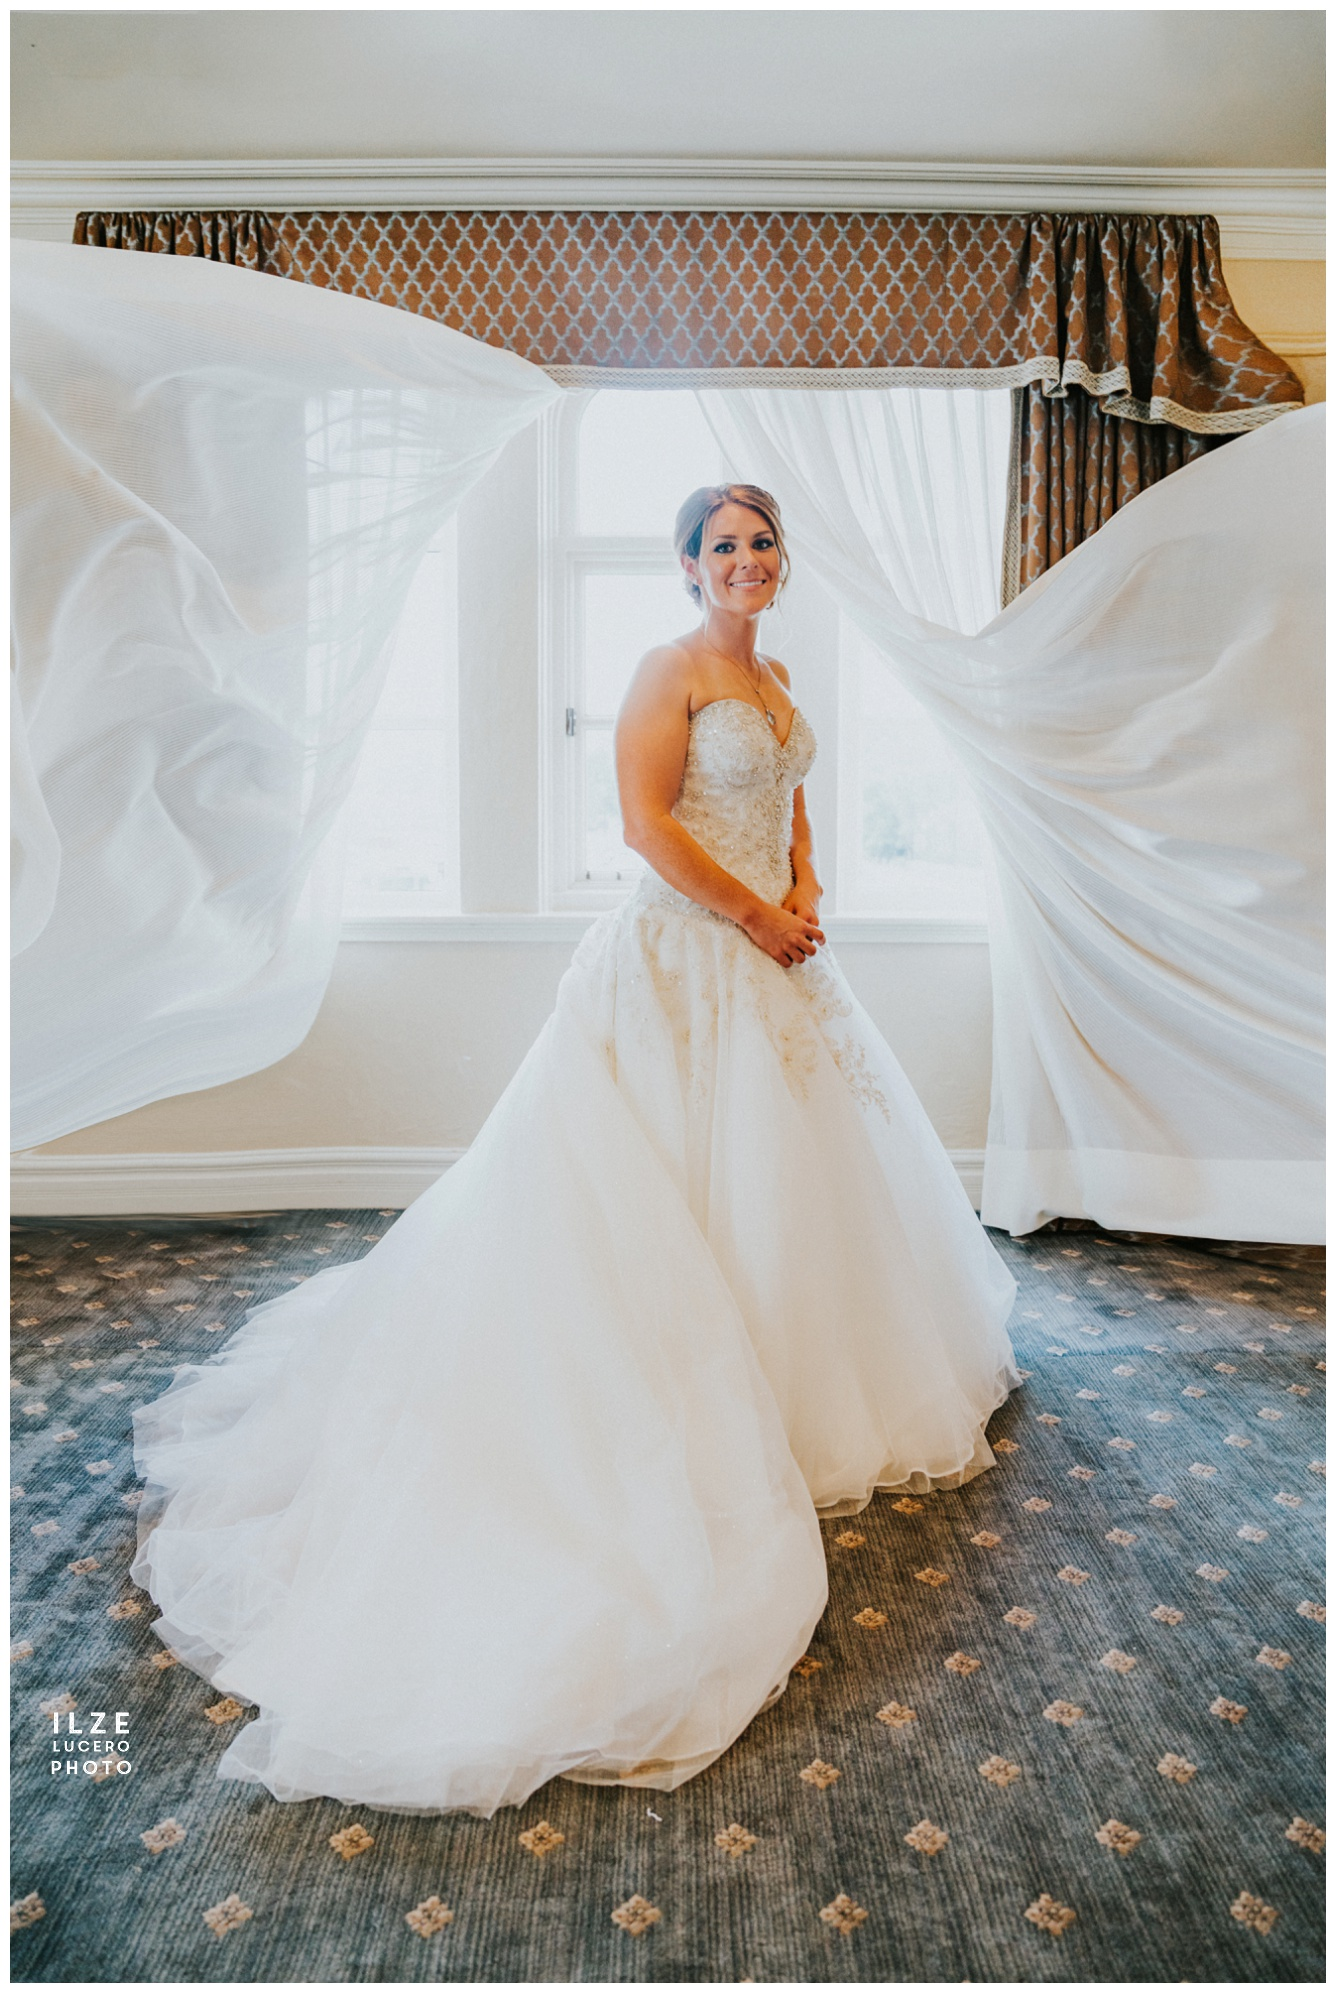 Bride - grosse pointe yacht club wedding